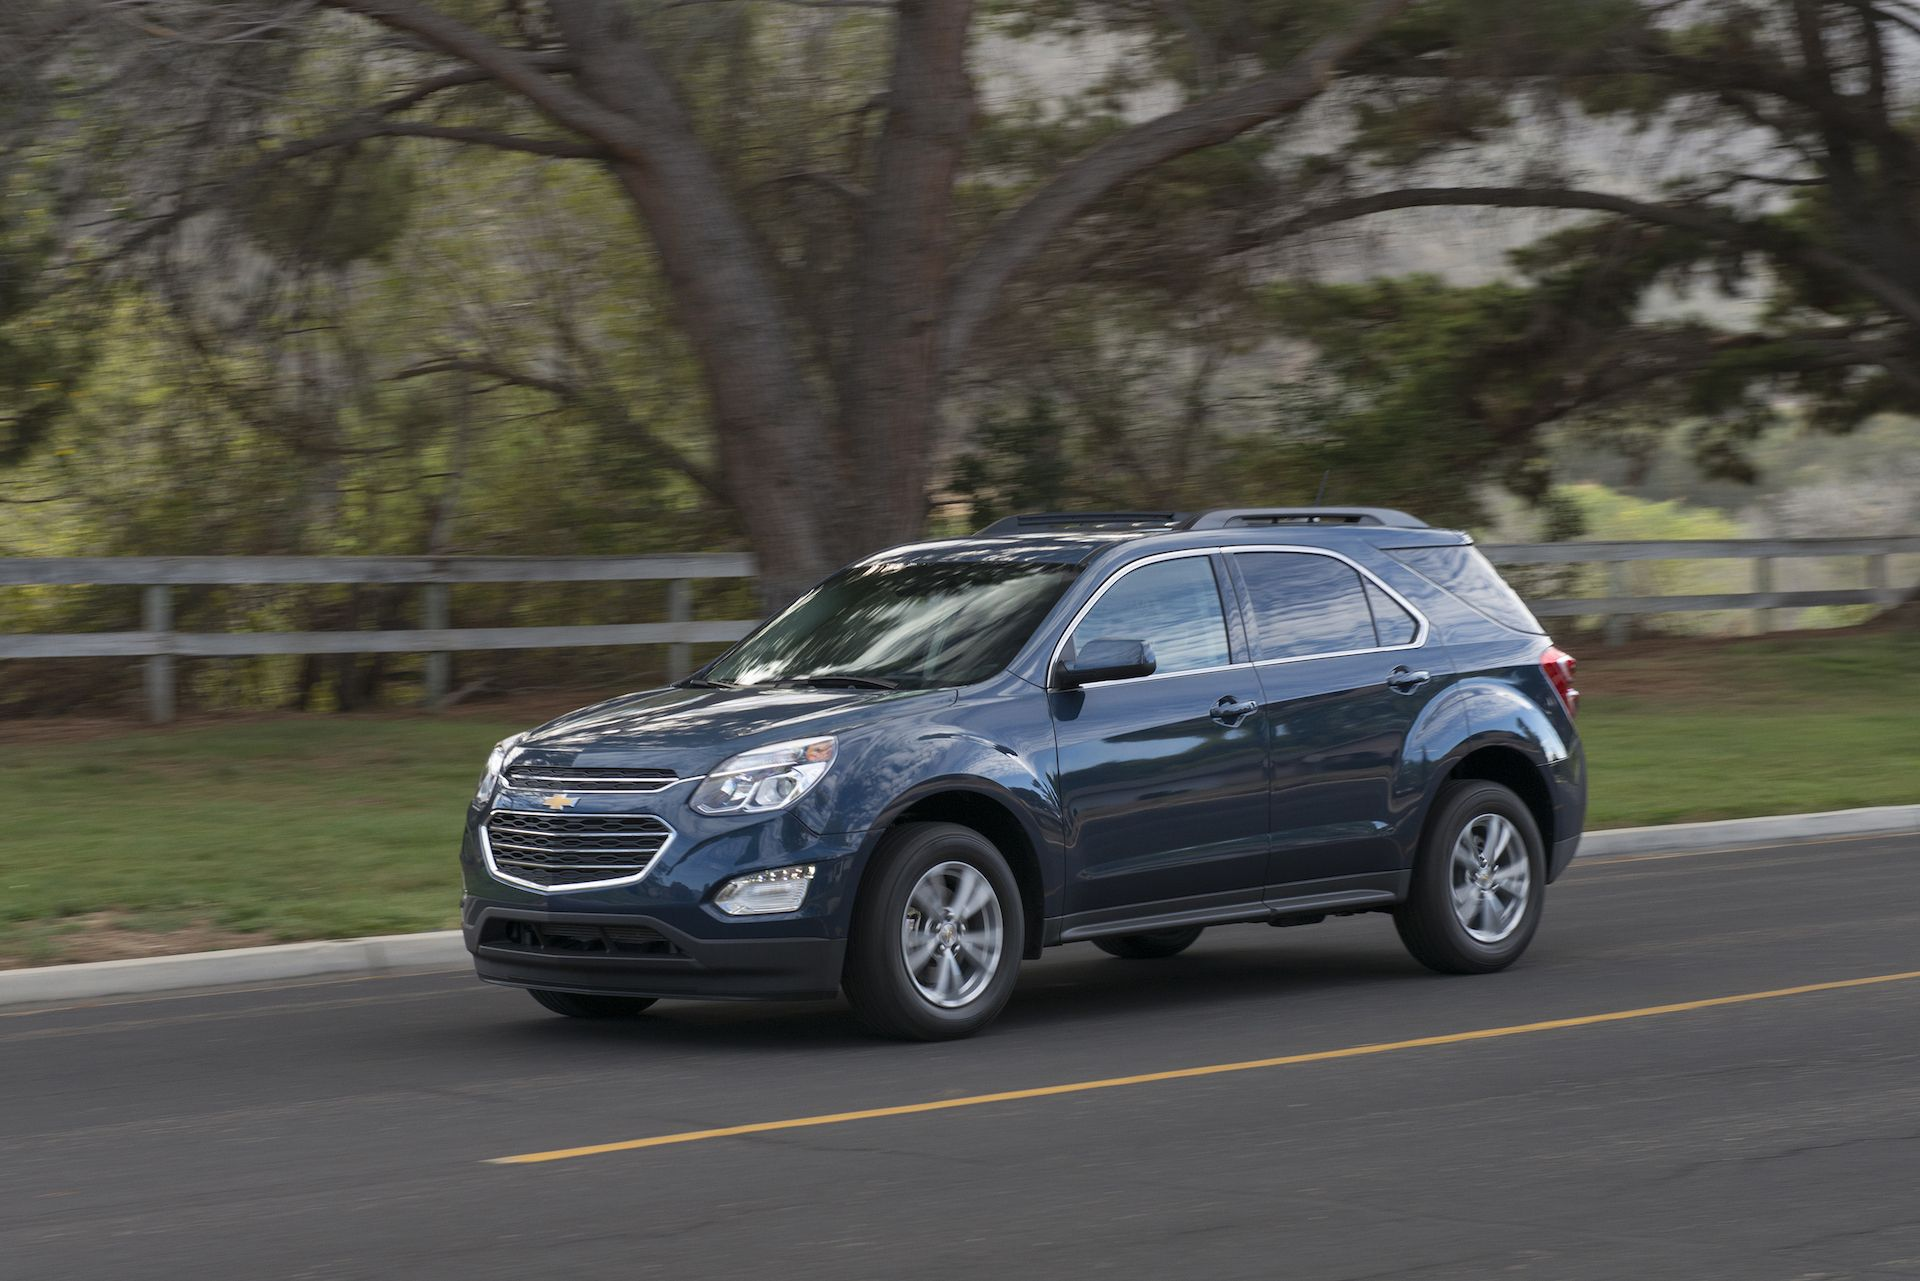 Lyft Quote Get The Latest Reviews Of The 2017 Chevrolet Equinoxfind Prices